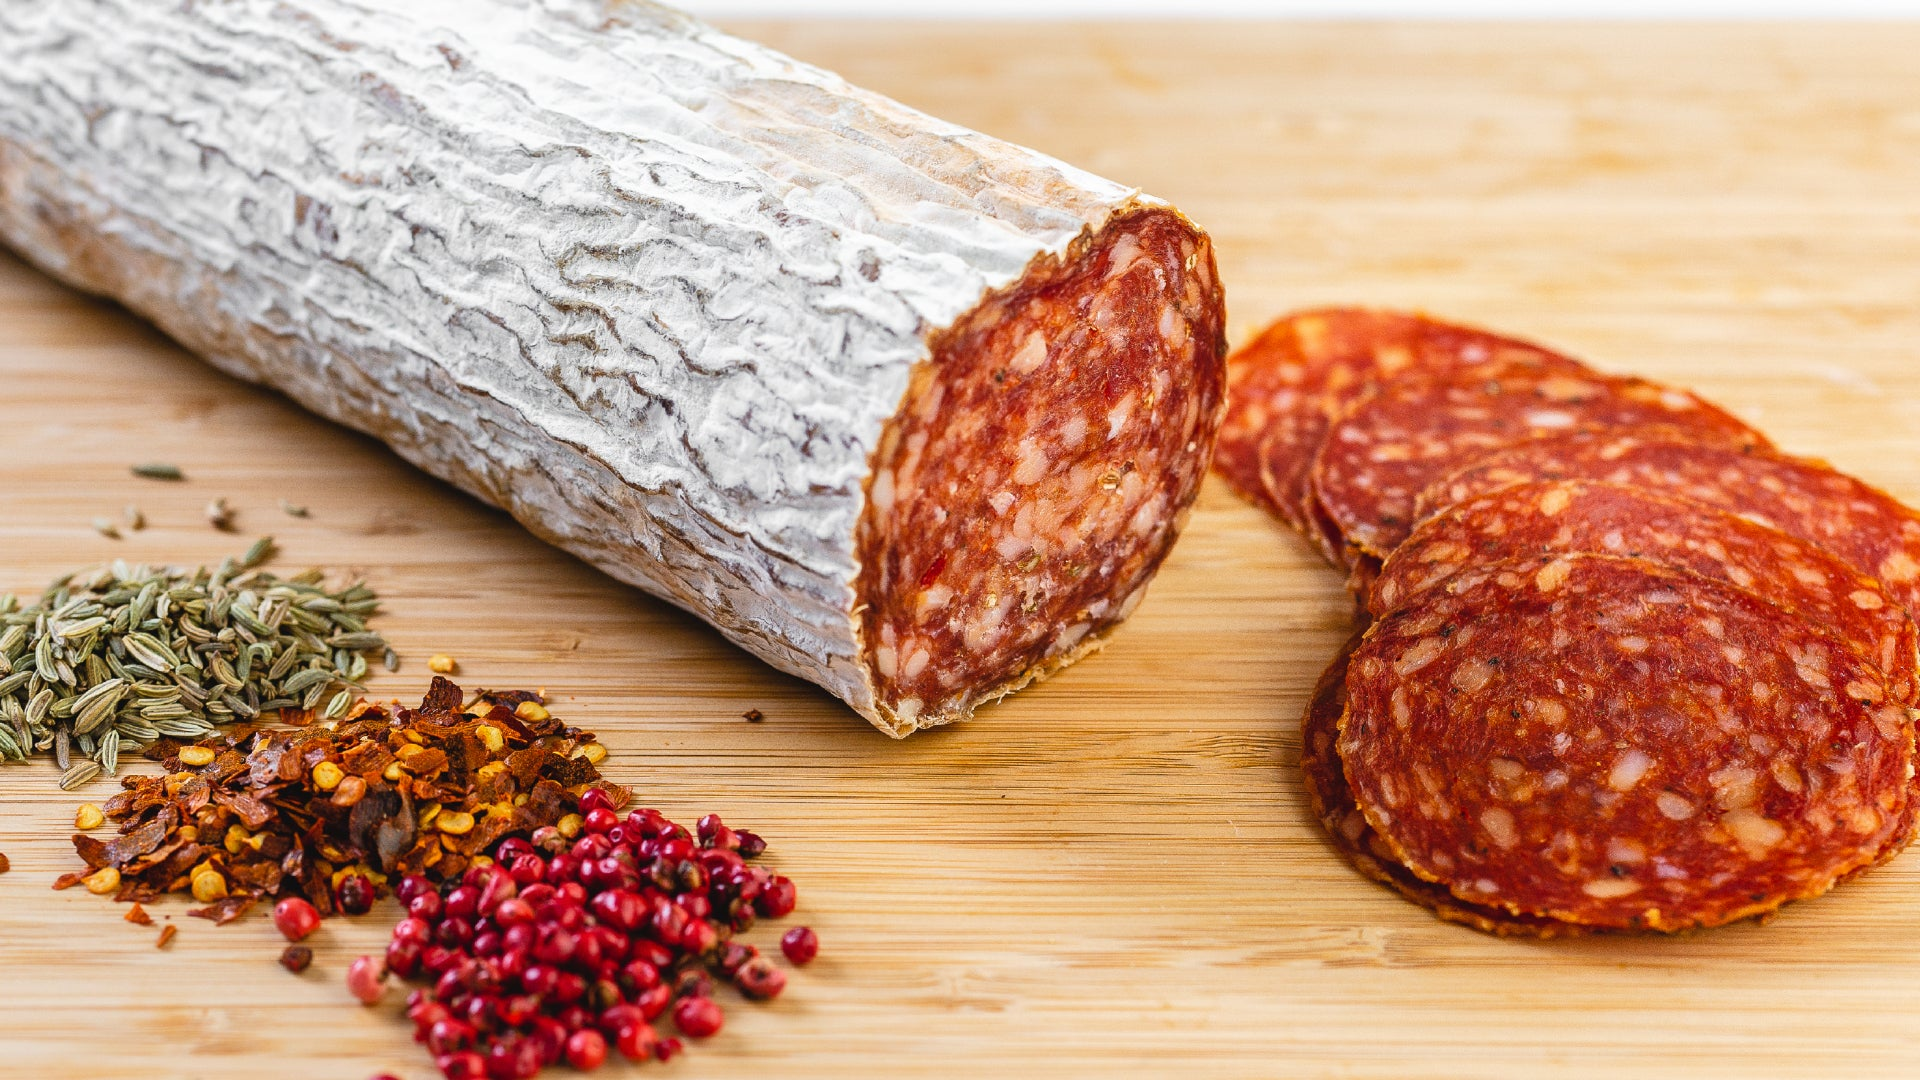 A large chub of Soppressata salami on a cutting board next to herbs and spices and with salami slices in the foreground.